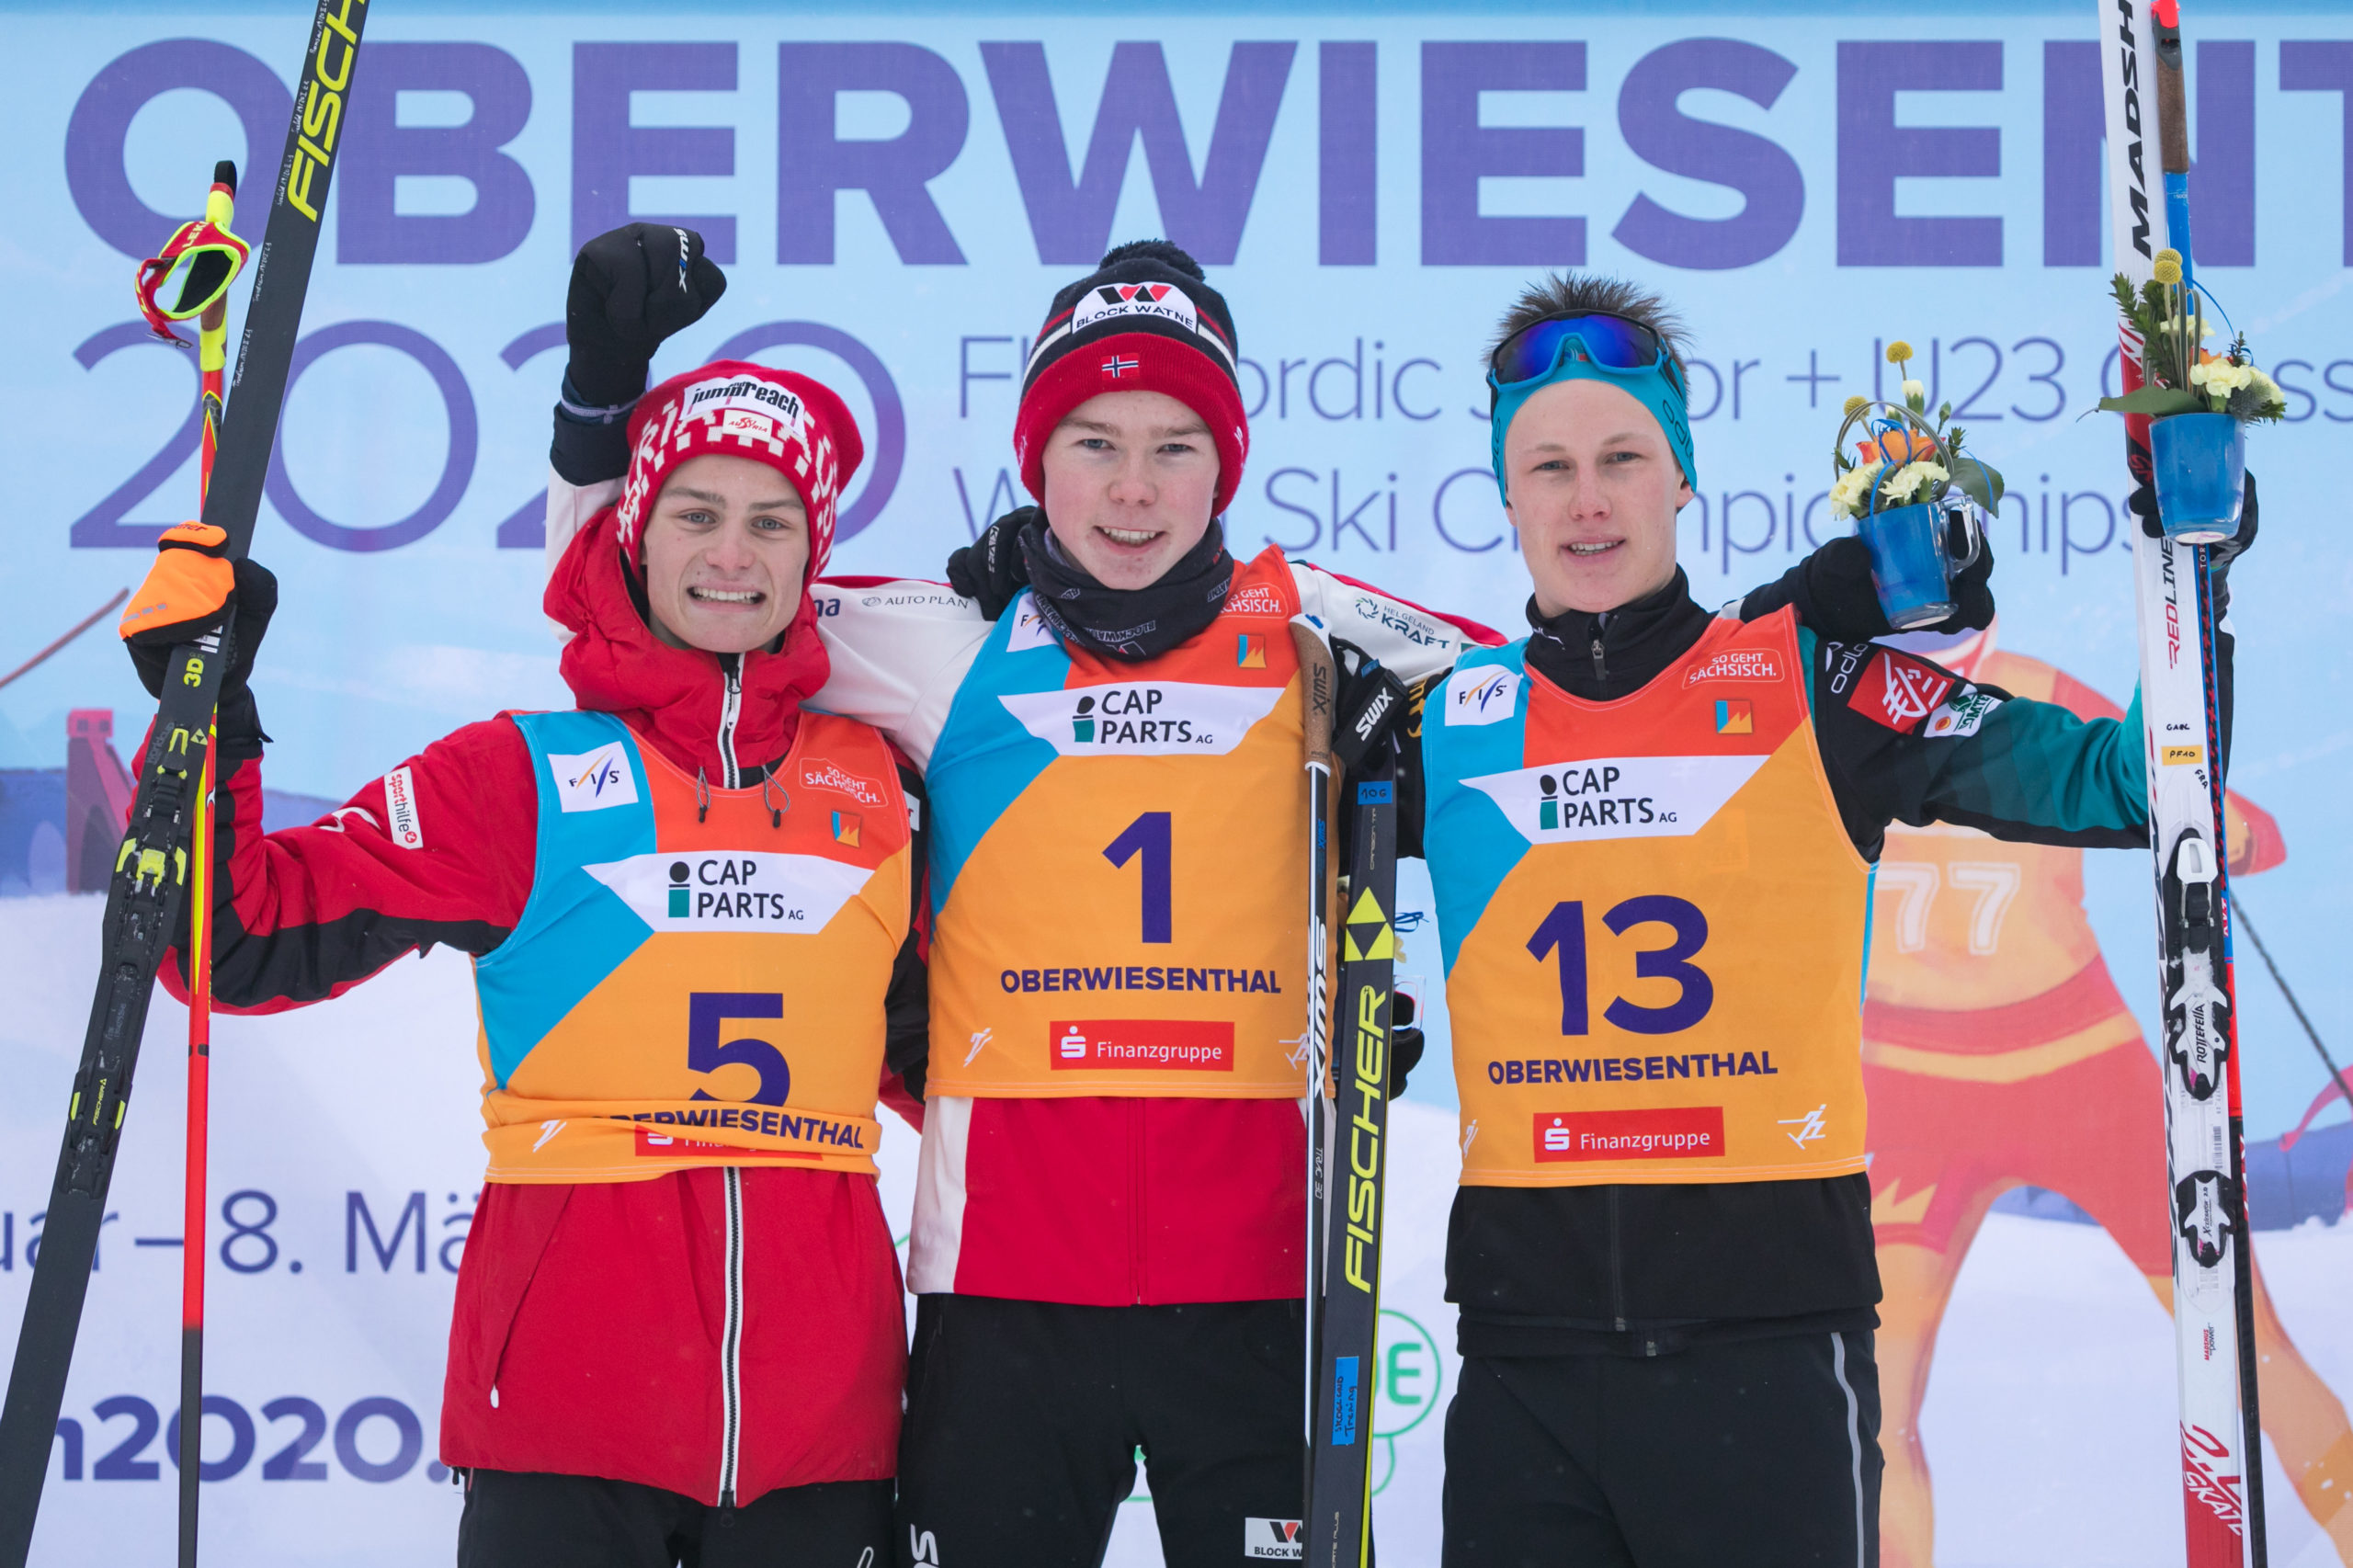 Johannes Lamparter, Gaël Blondeau, Jens Luraas Oftebro,combiné nordique, Oberwiesenthal